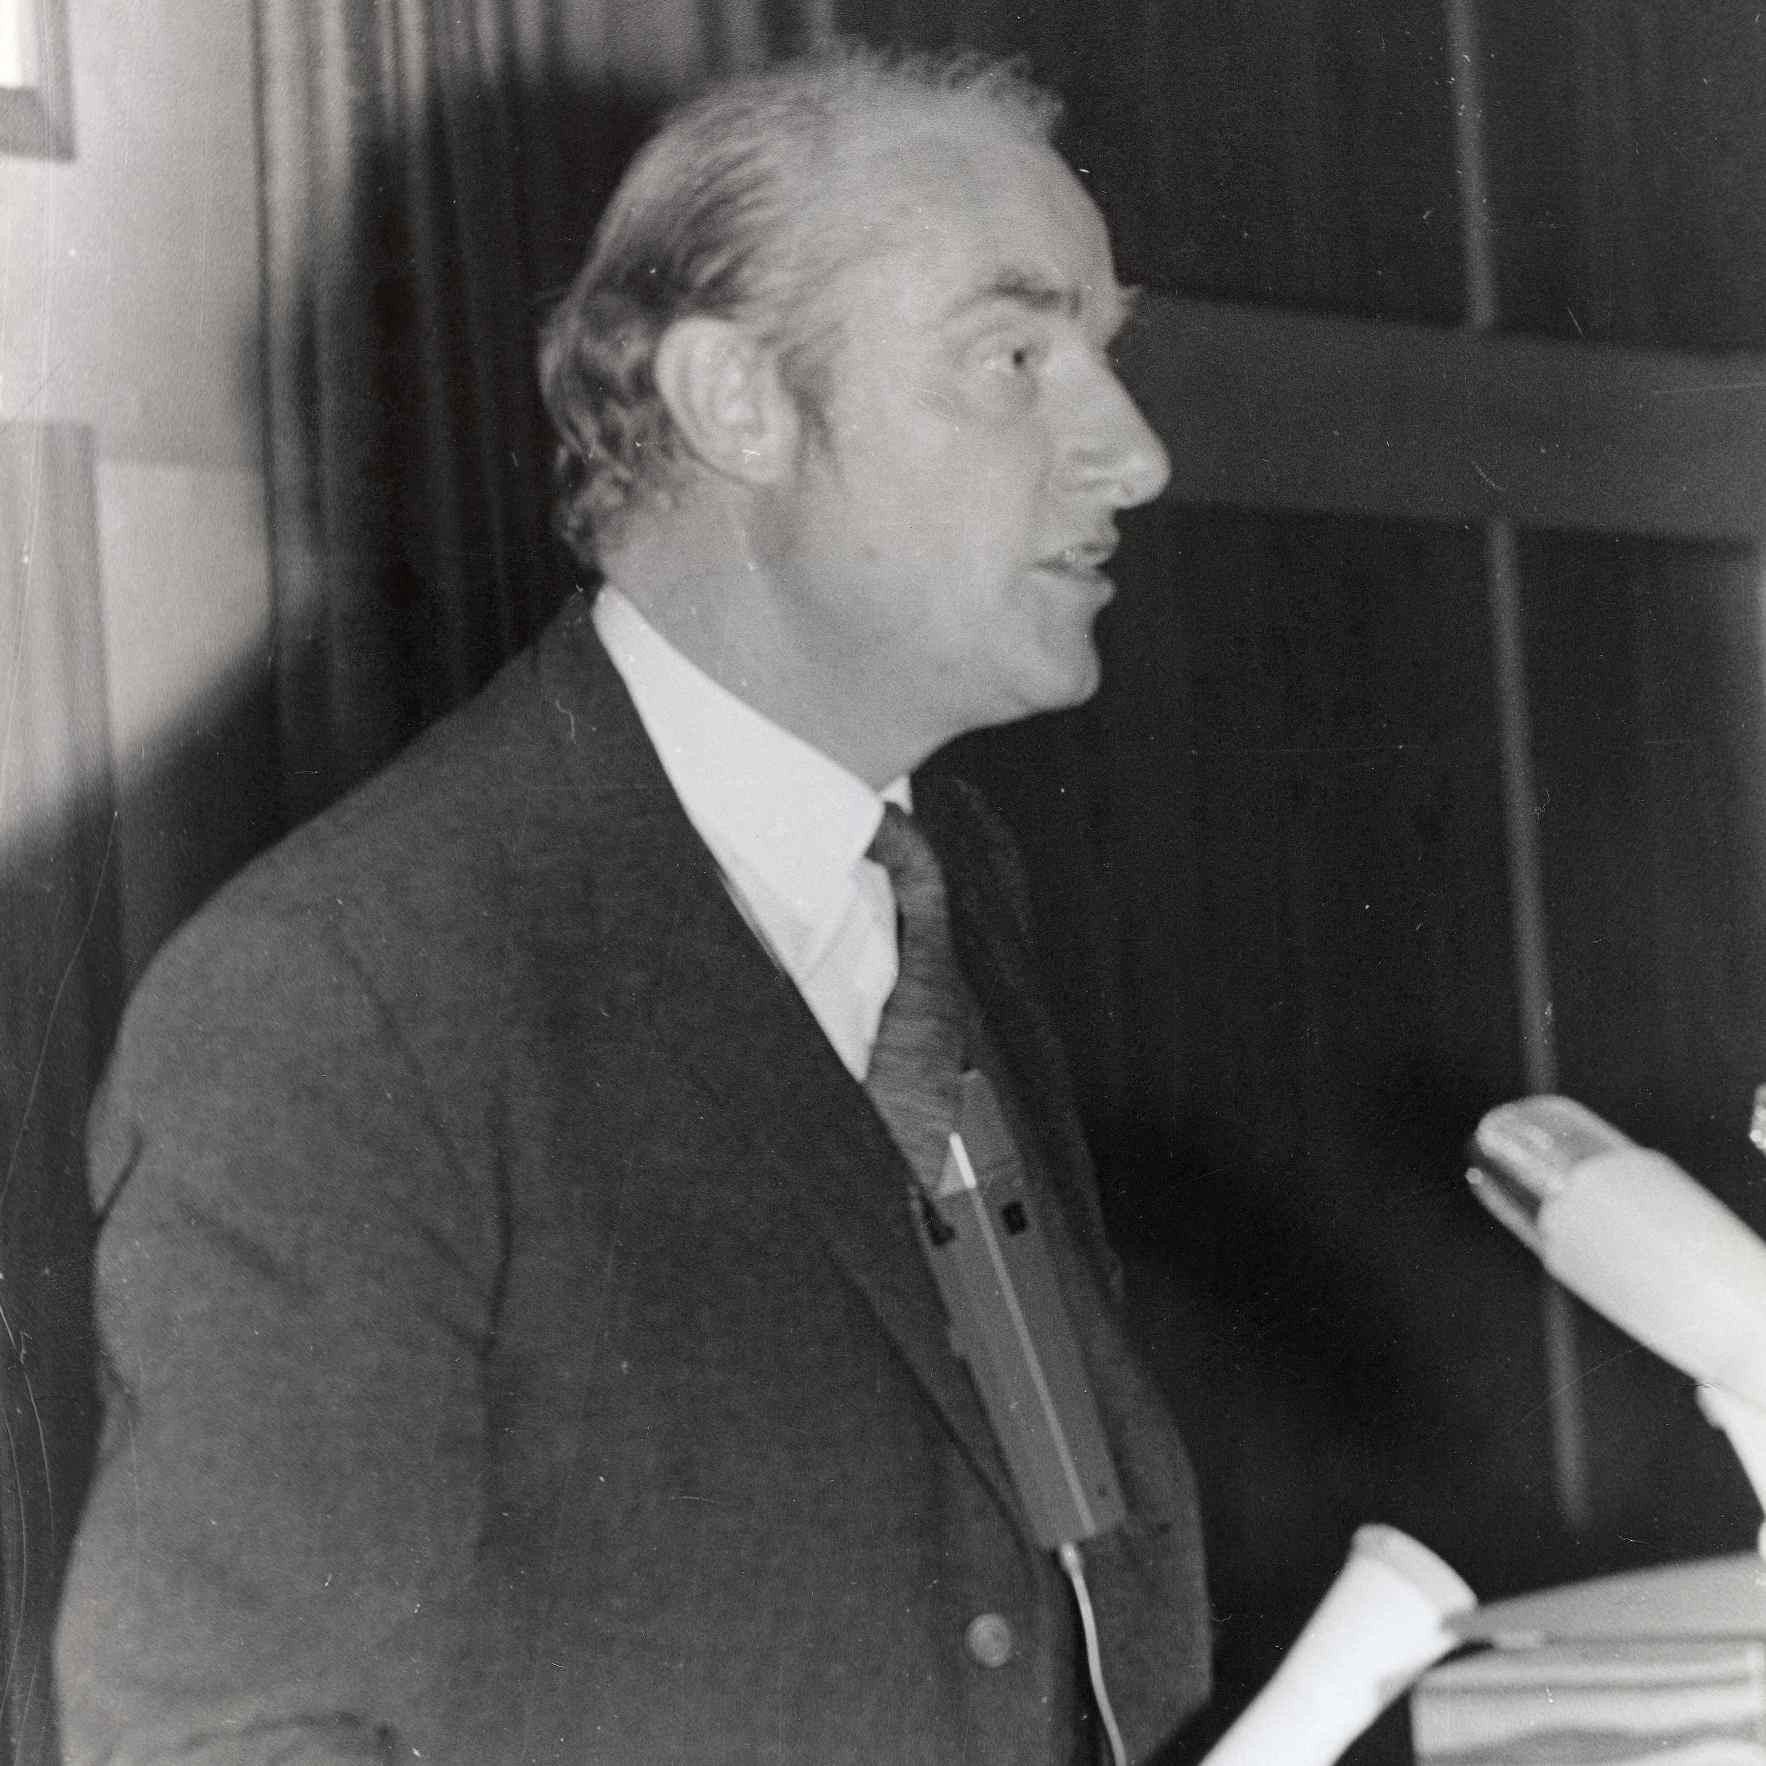 Black and white photograph of Francis Crick standing in profile.